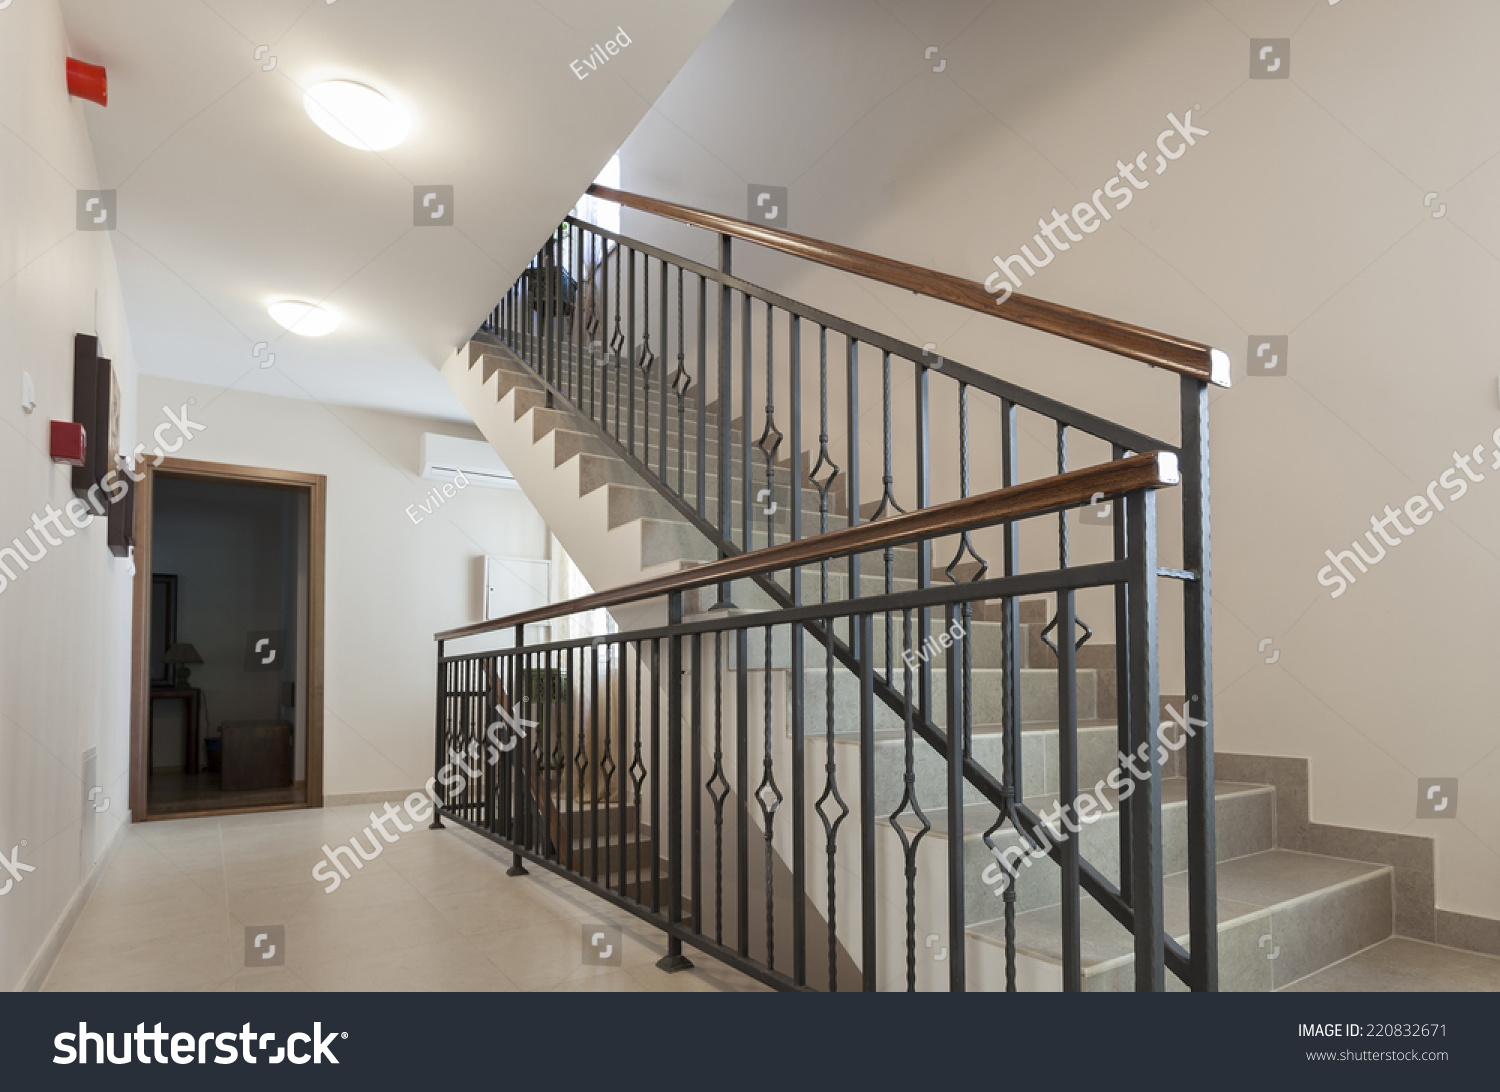 Stairs Apartment Building Stock Photo 220832671 - Shutterstock